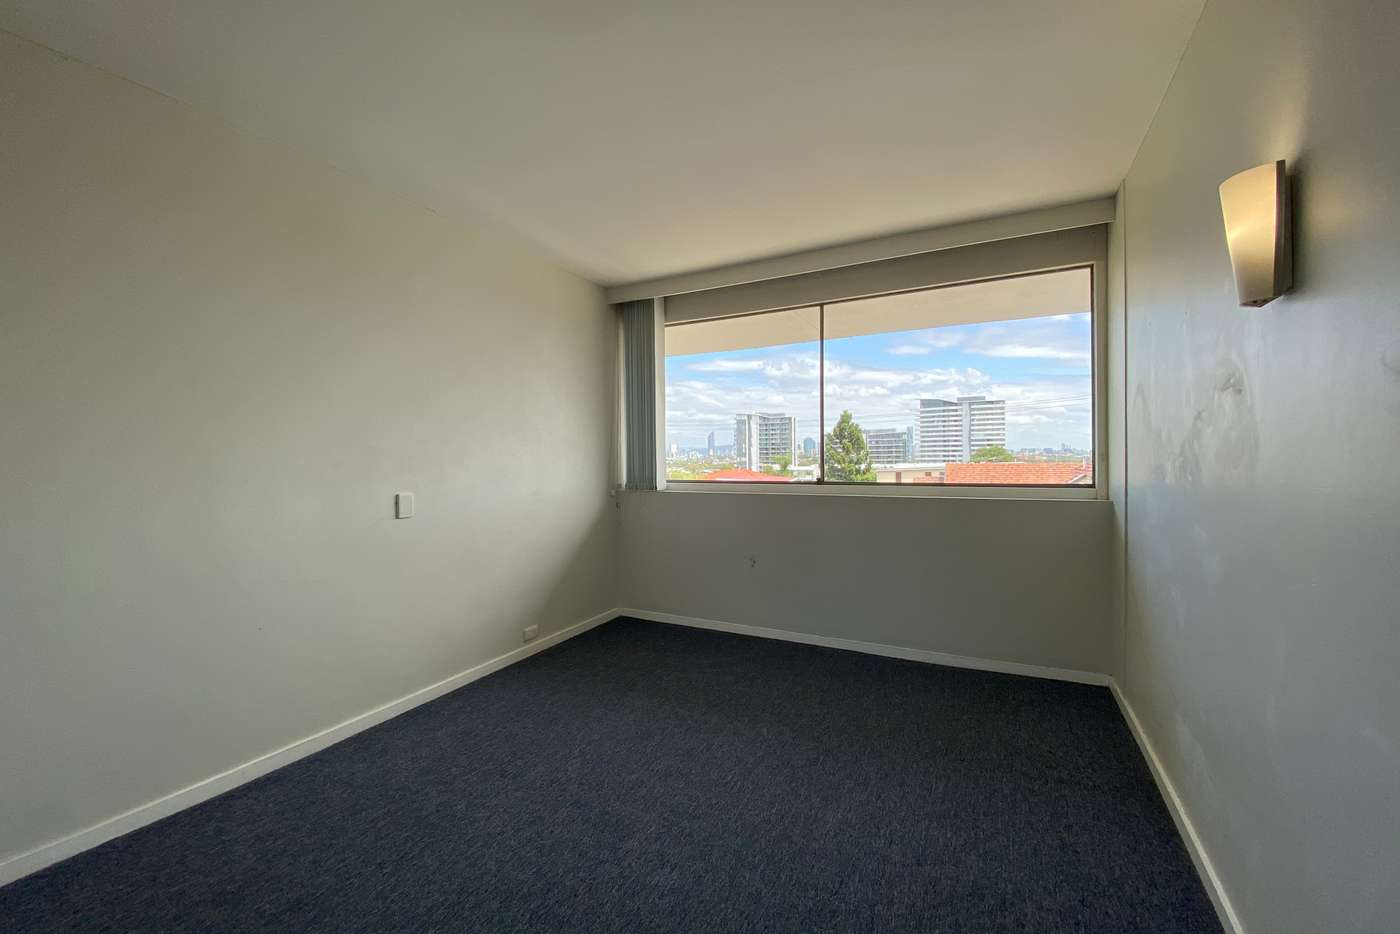 Seventh view of Homely house listing, 10/223 Cavendish Road, Coorparoo QLD 4151